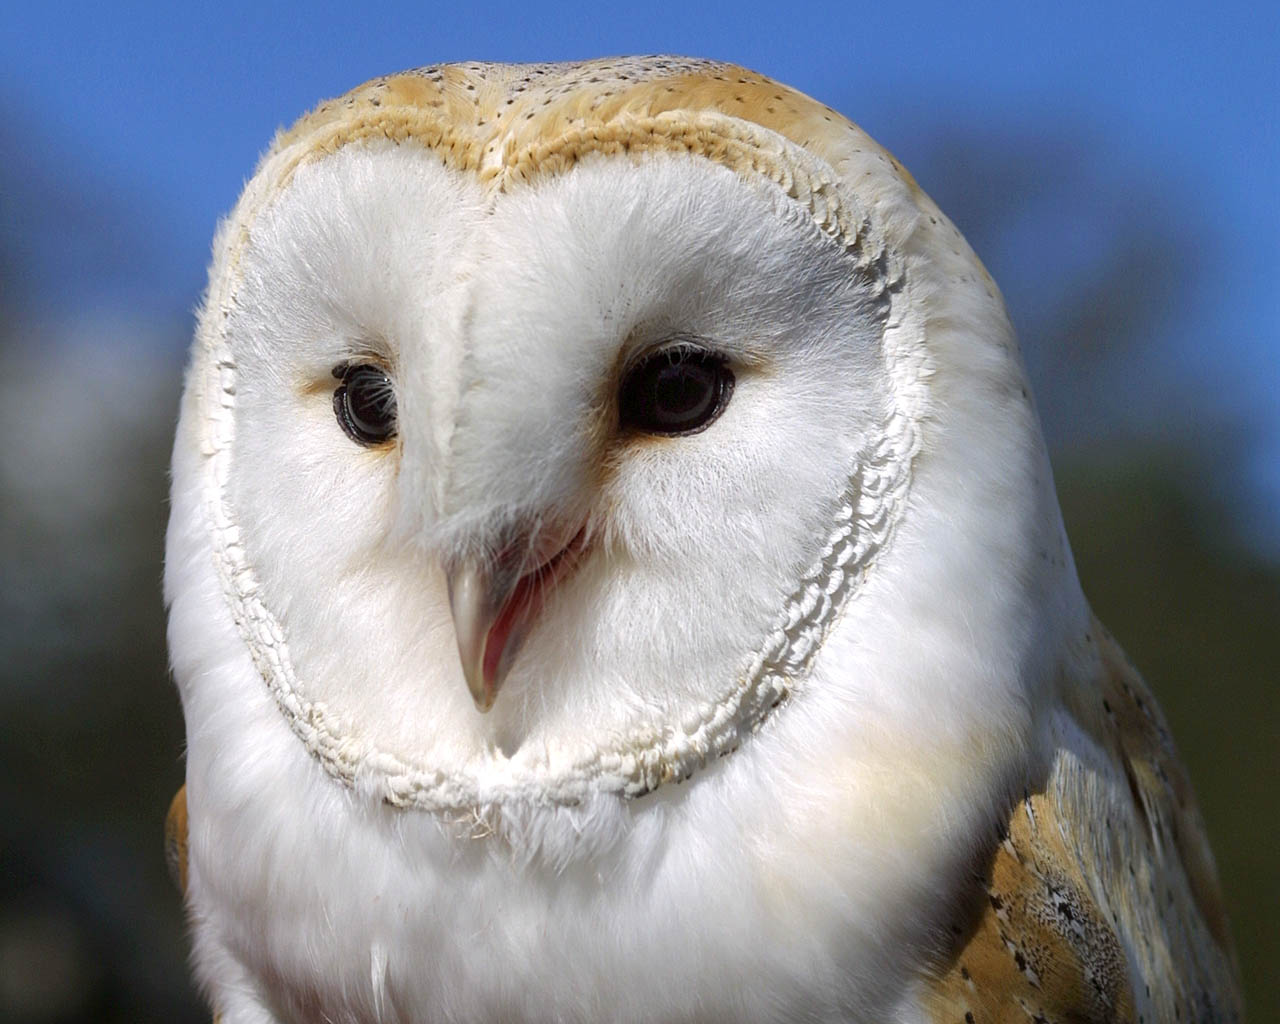 Tythe the Barn Owl